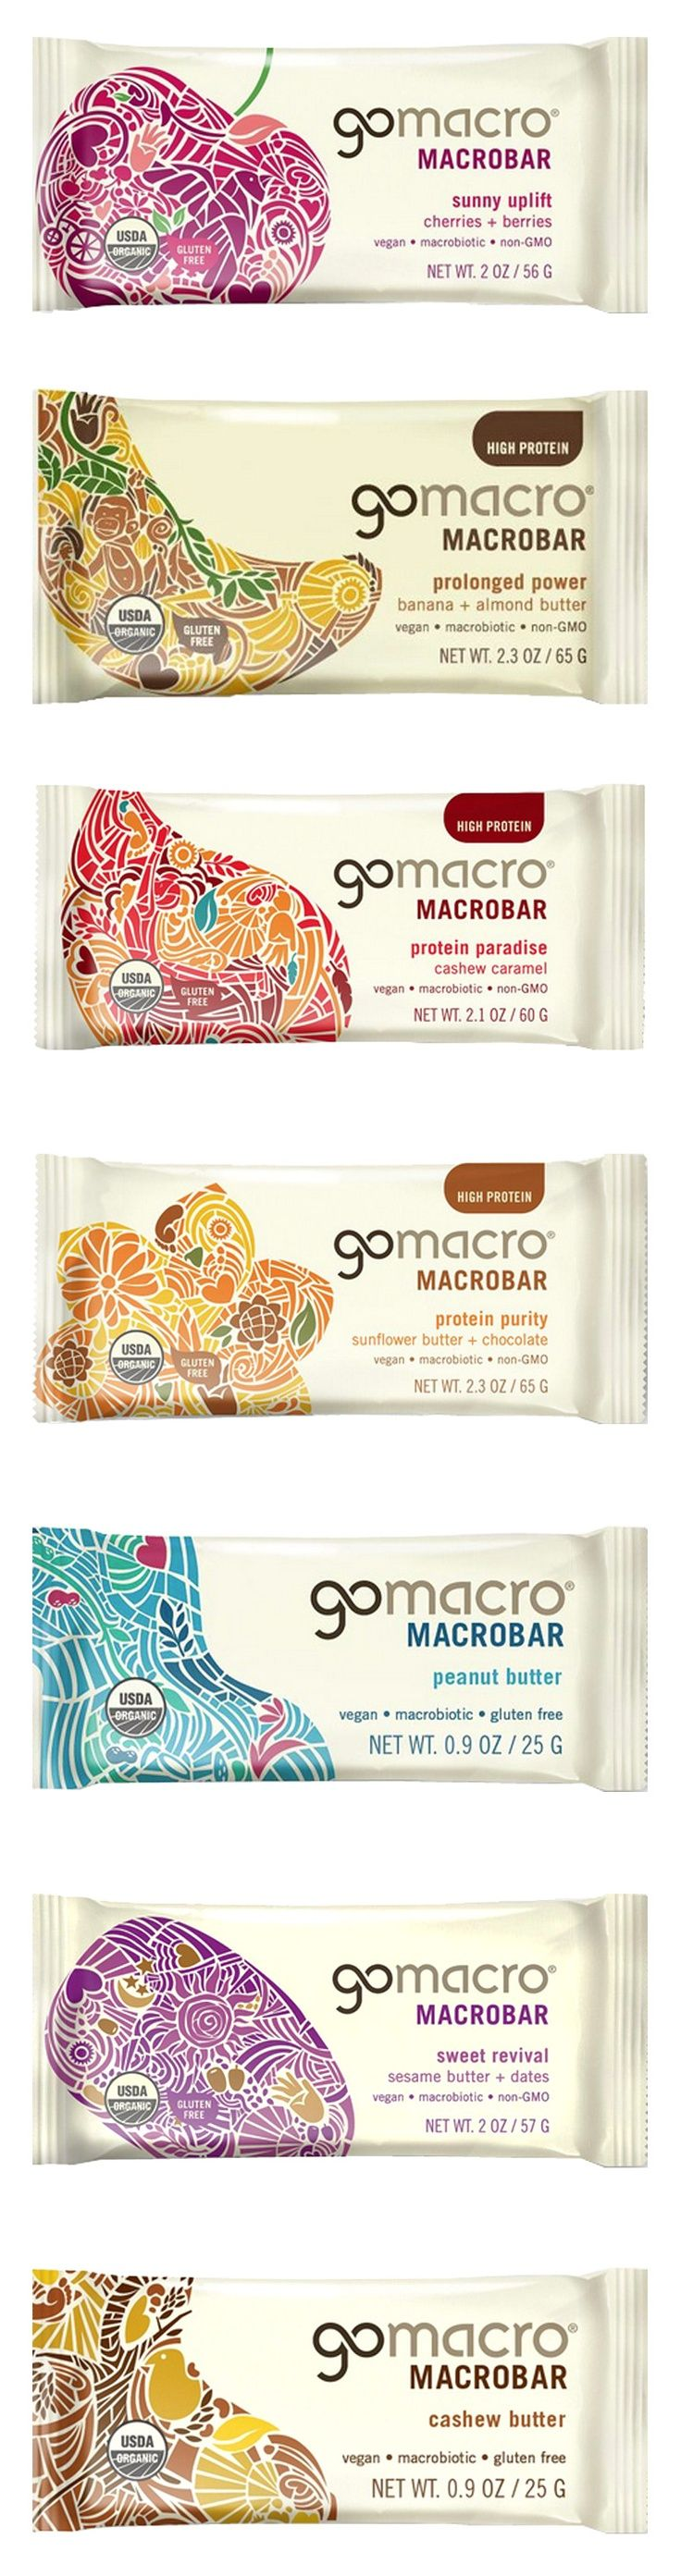 Completed redesign of the GoMacro brand including the brand identity and packaging by Pearlfisher. Great illustrations PD